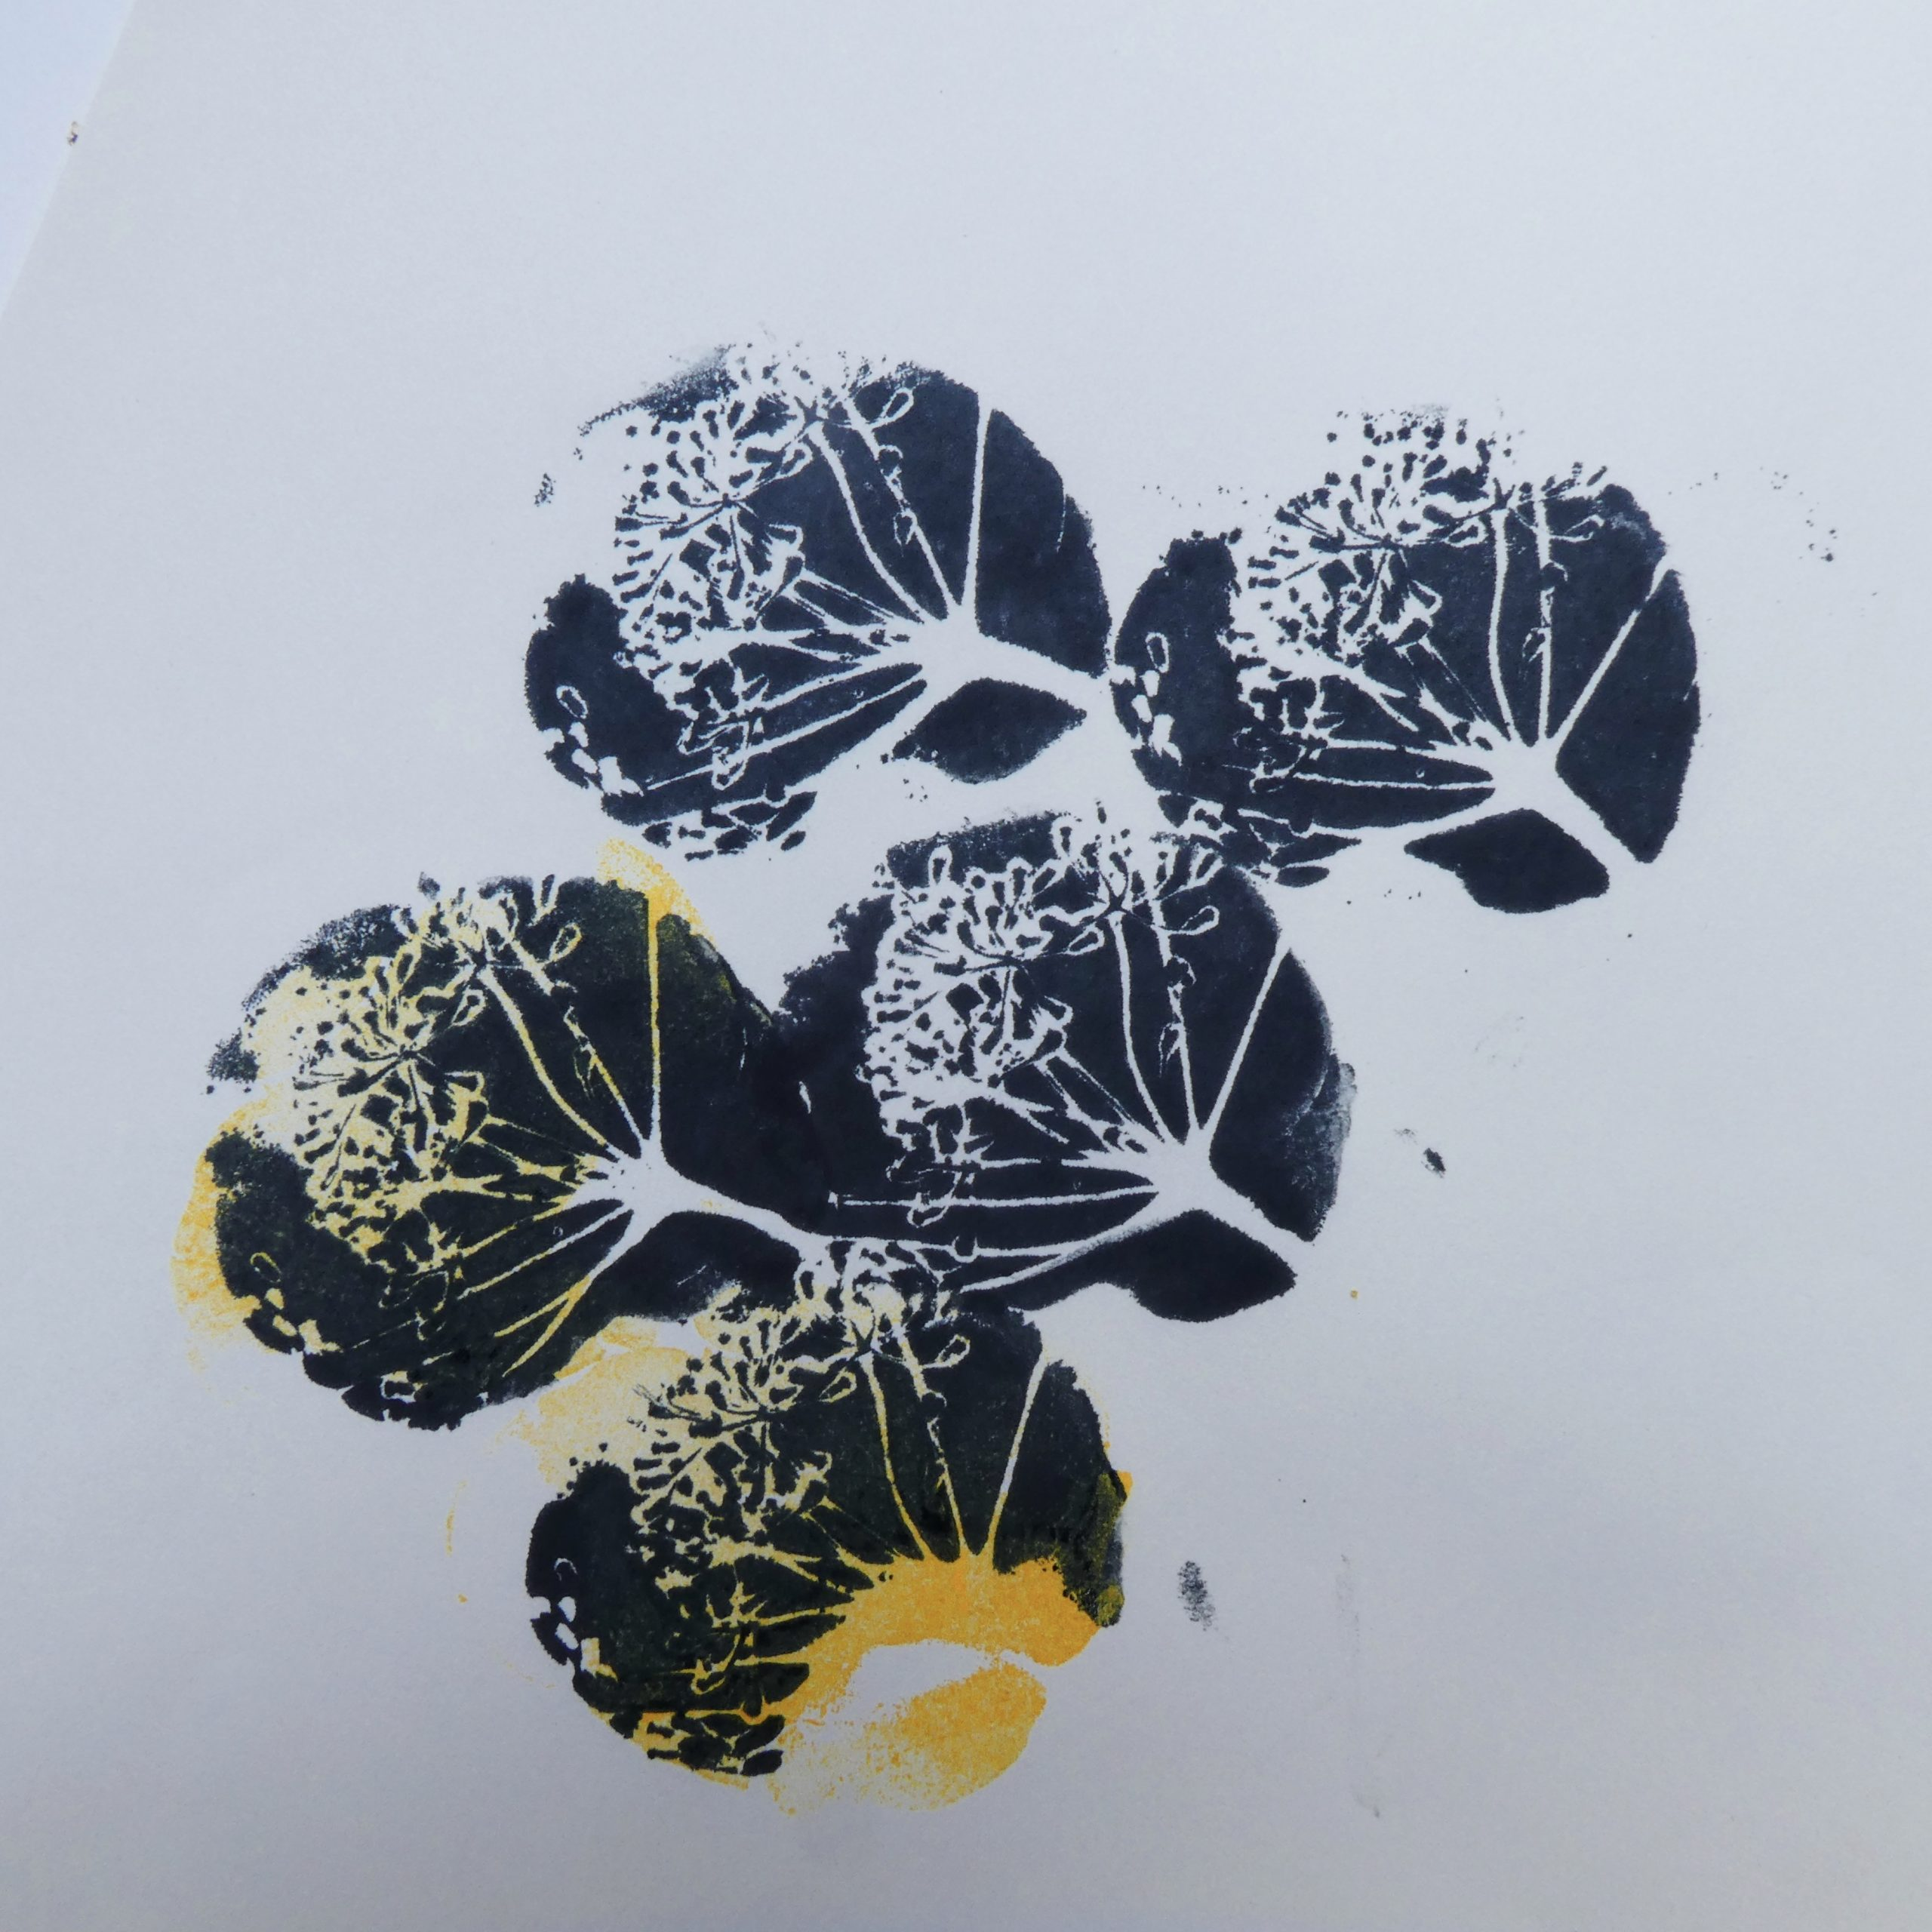 Five seed head prints in black and yellow